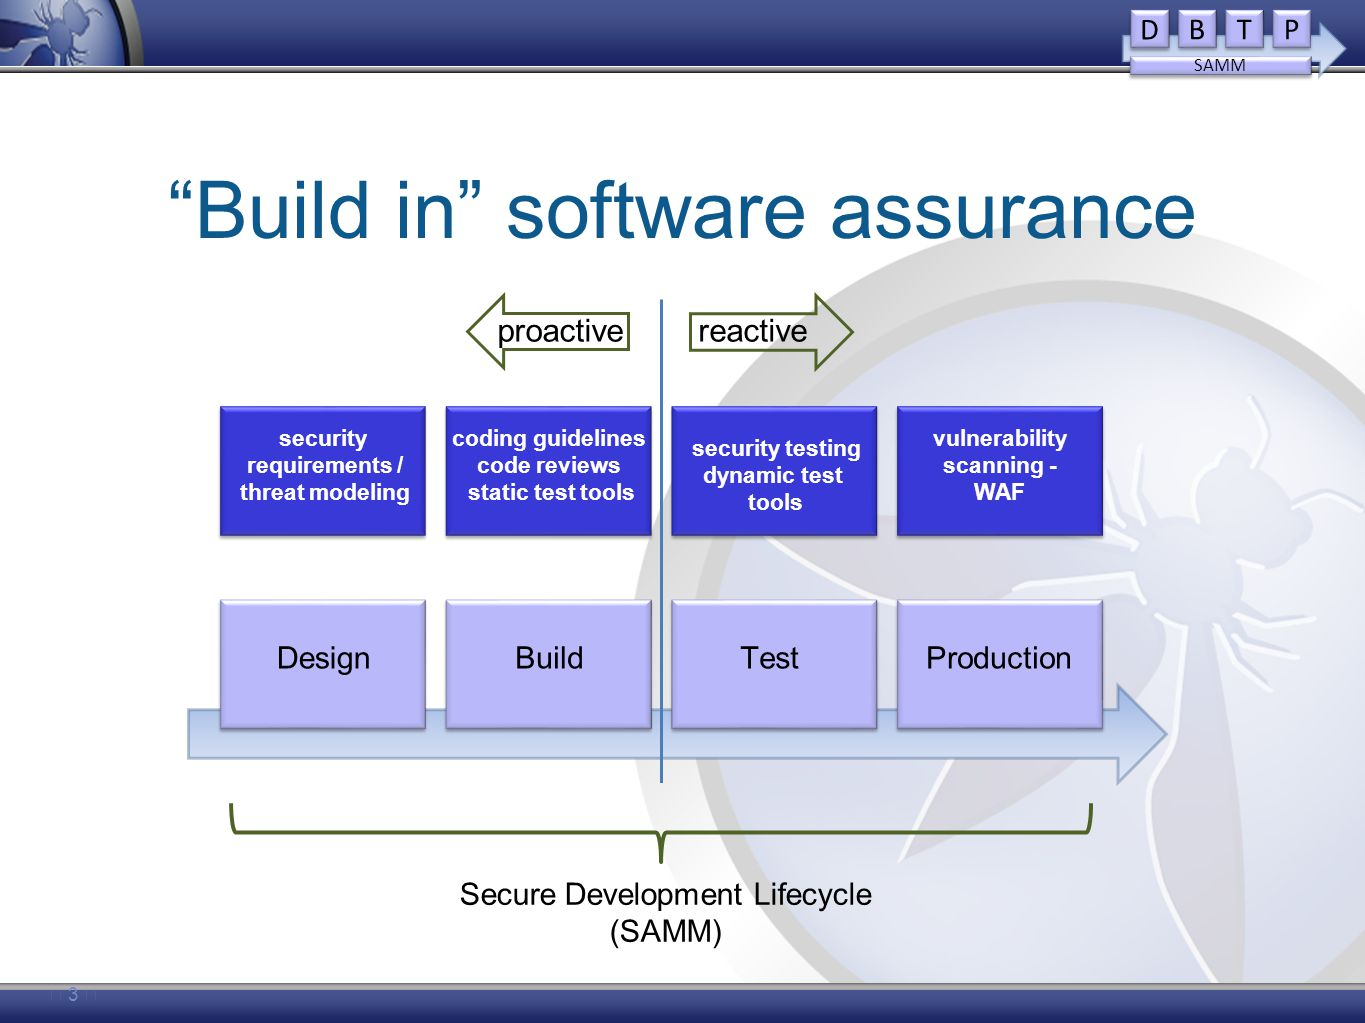 Build in software assurance 3 DesignBuildTestProduction vulnerability scanning - WAF security testing dynamic test tools coding guidelines code reviews static test tools security requirements / threat modeling reactiveproactive Secure Development Lifecycle (SAMM) D D B B T T P P SAMM